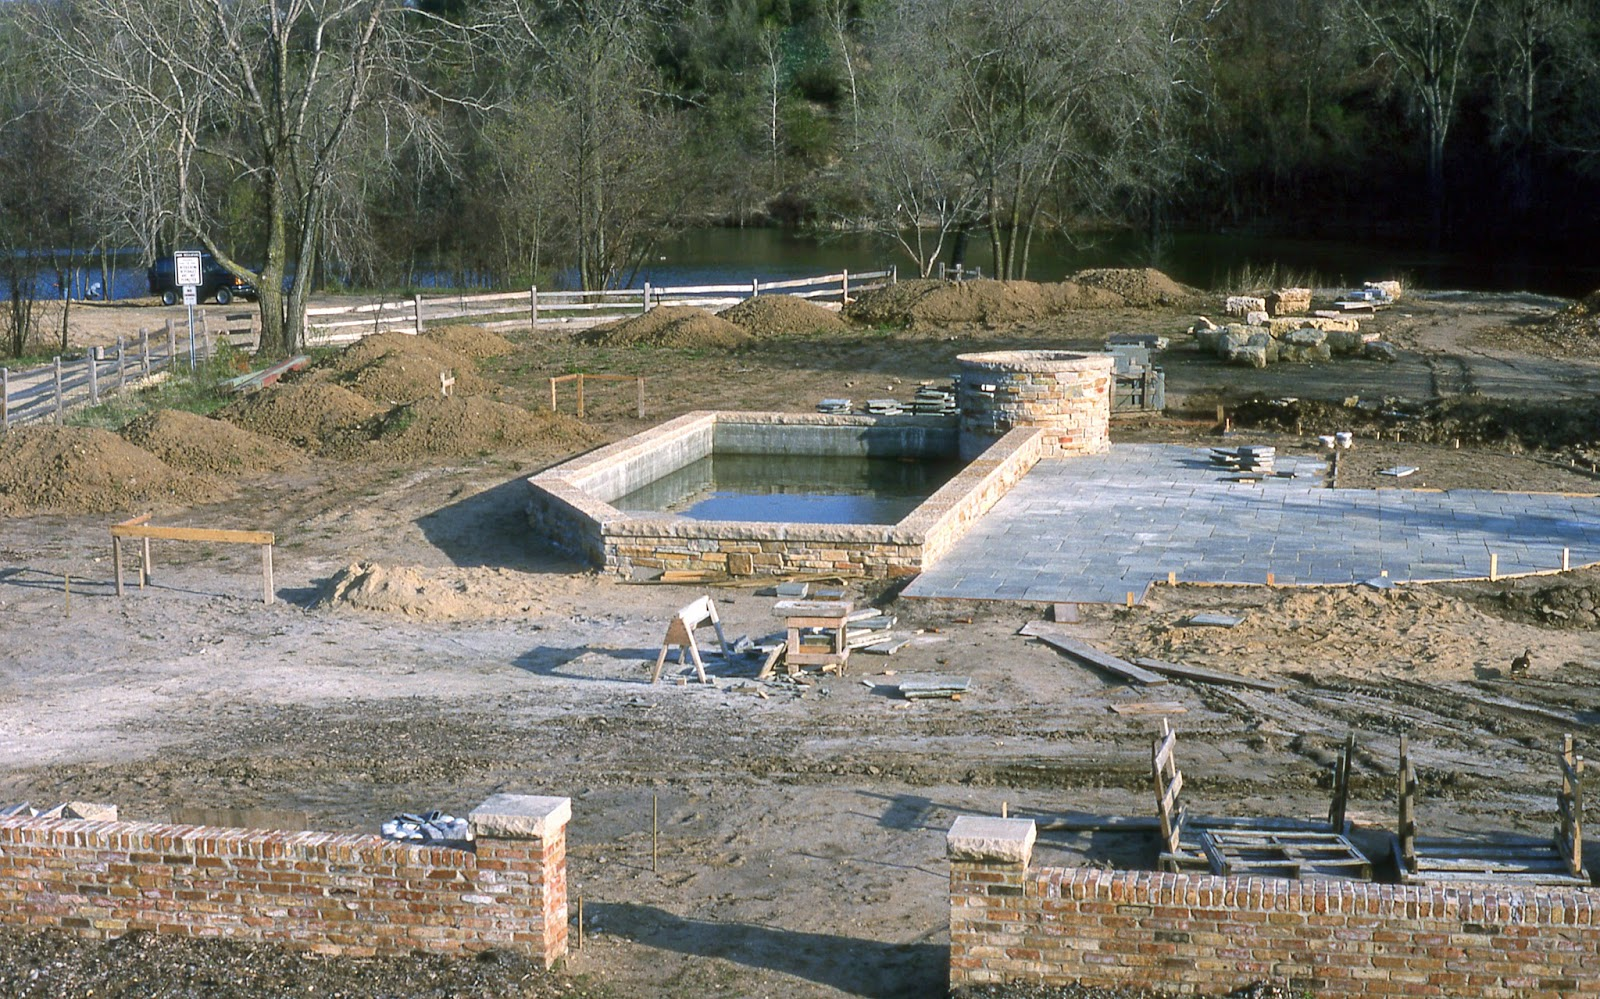 Rotary botanical gardens hort blog a blast from the past for Koi pond builders near me